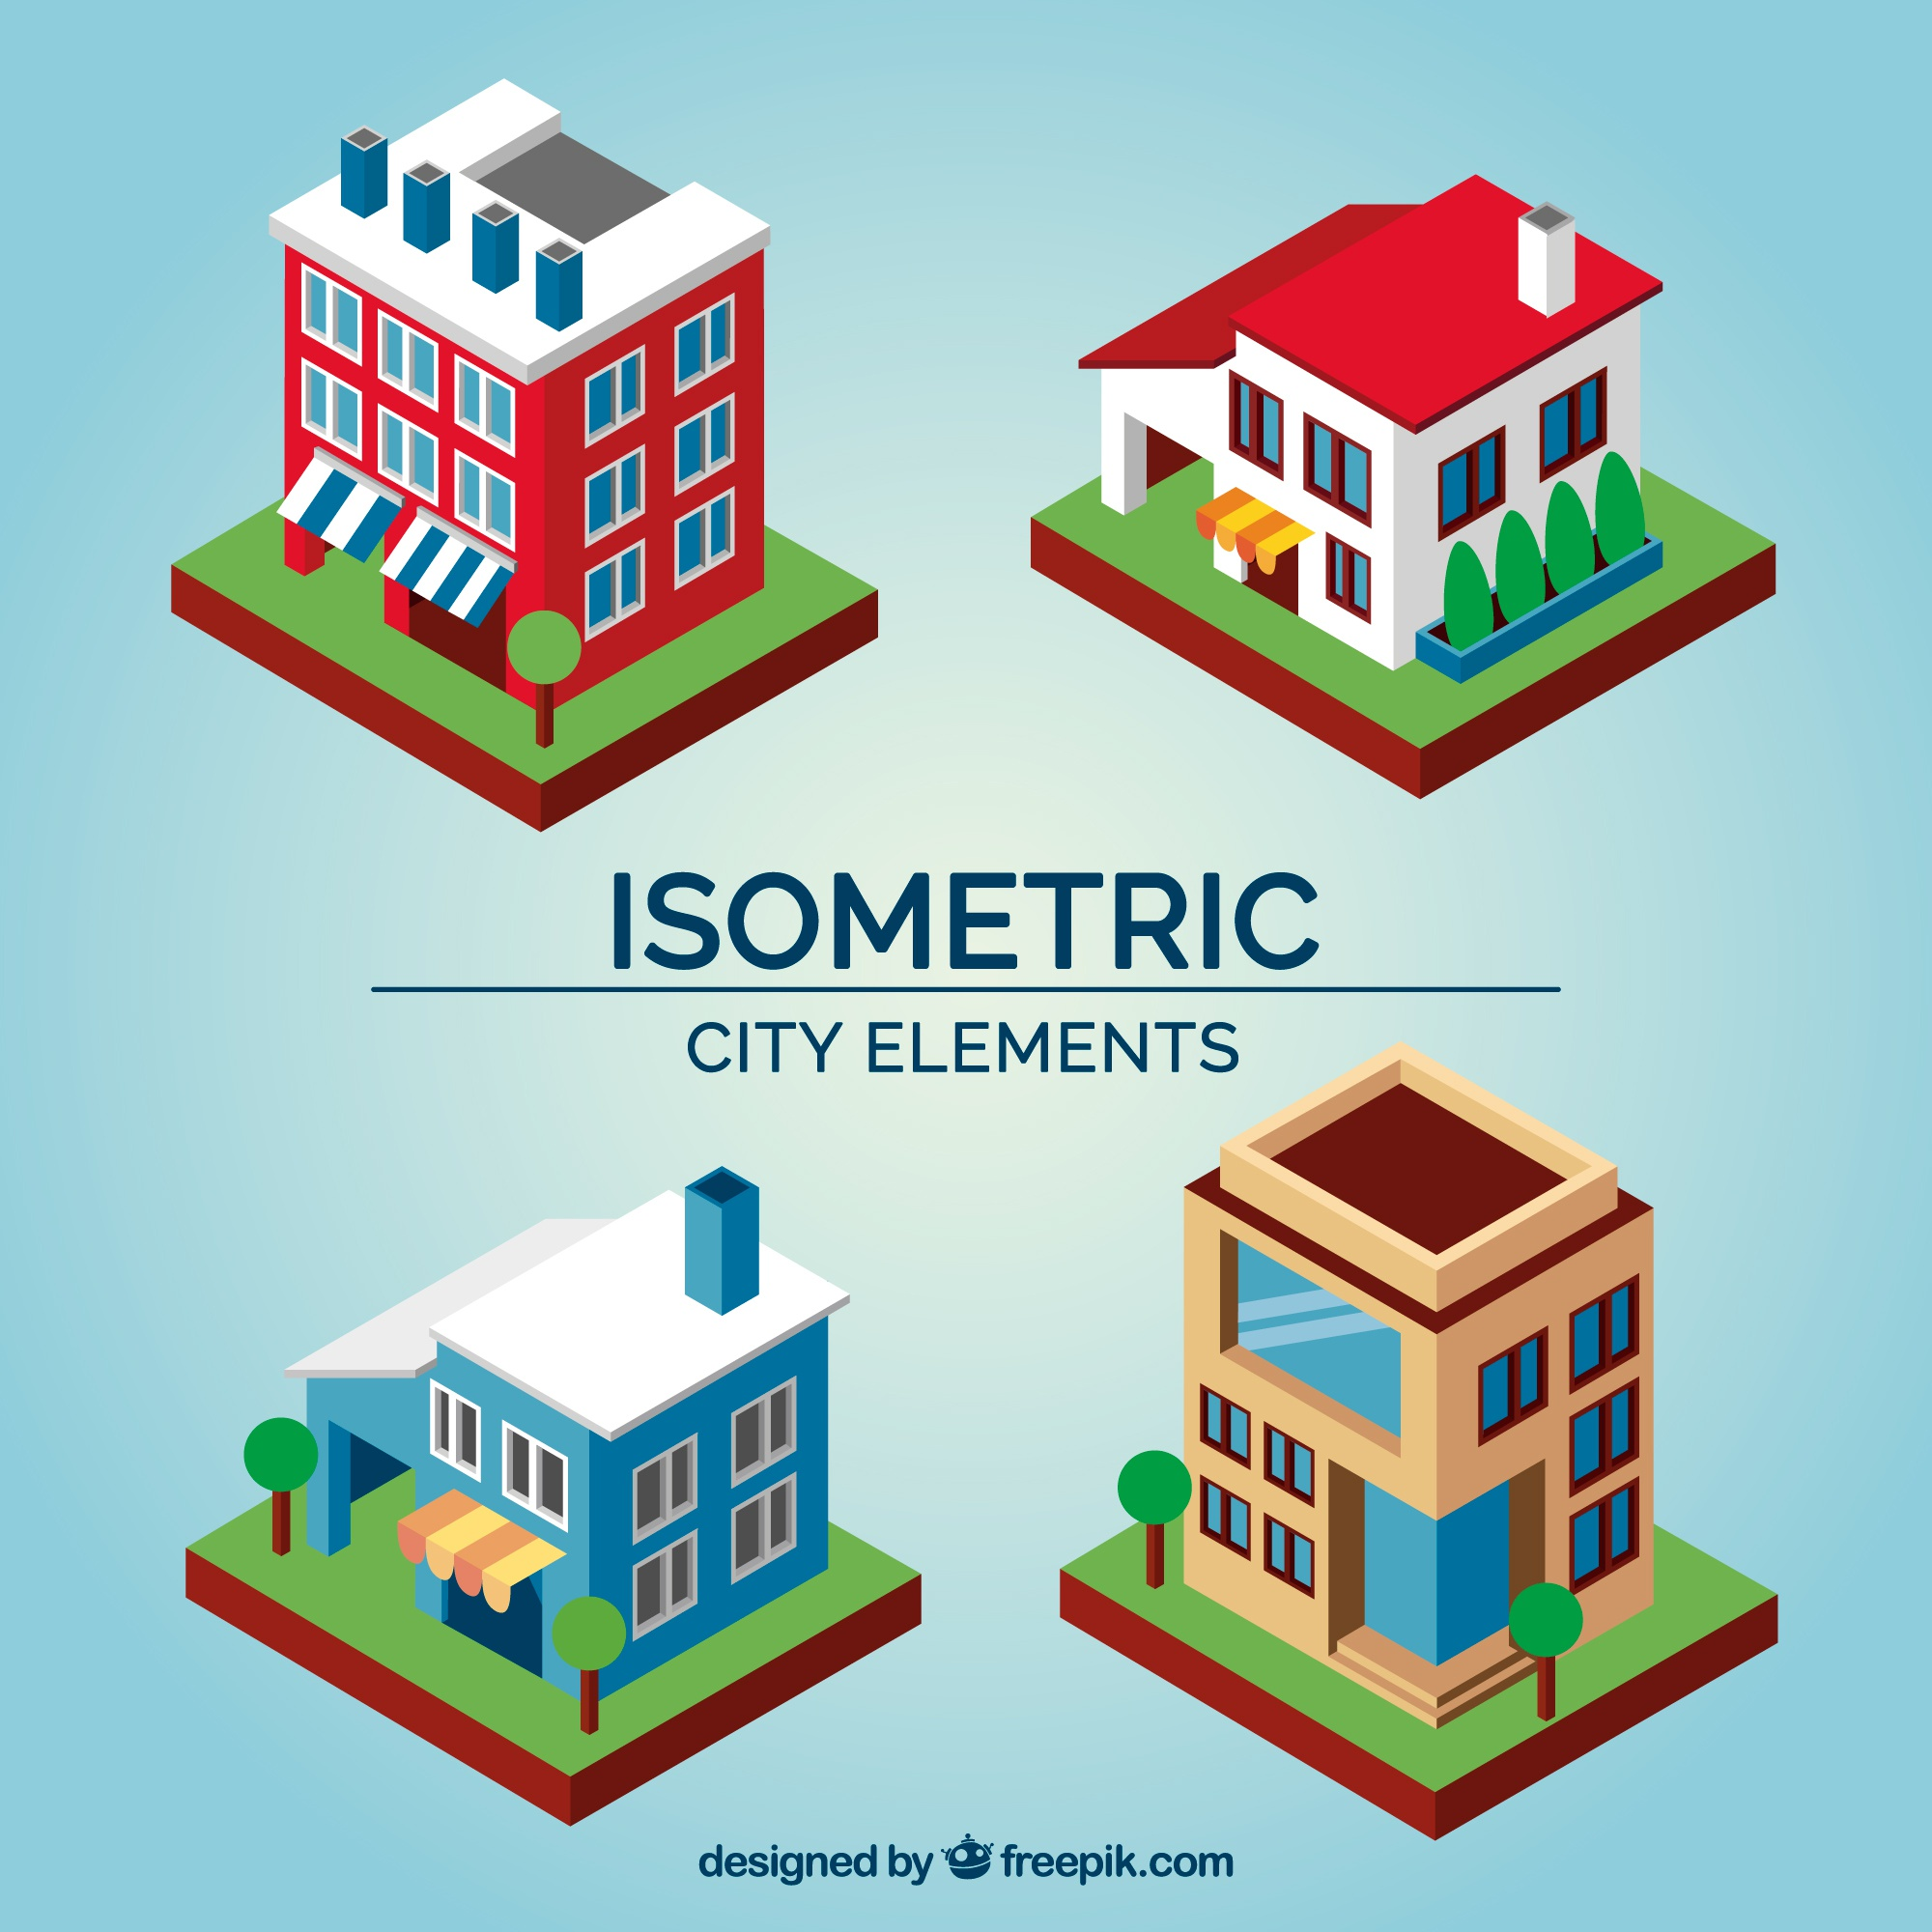 Several buildings in isometric design